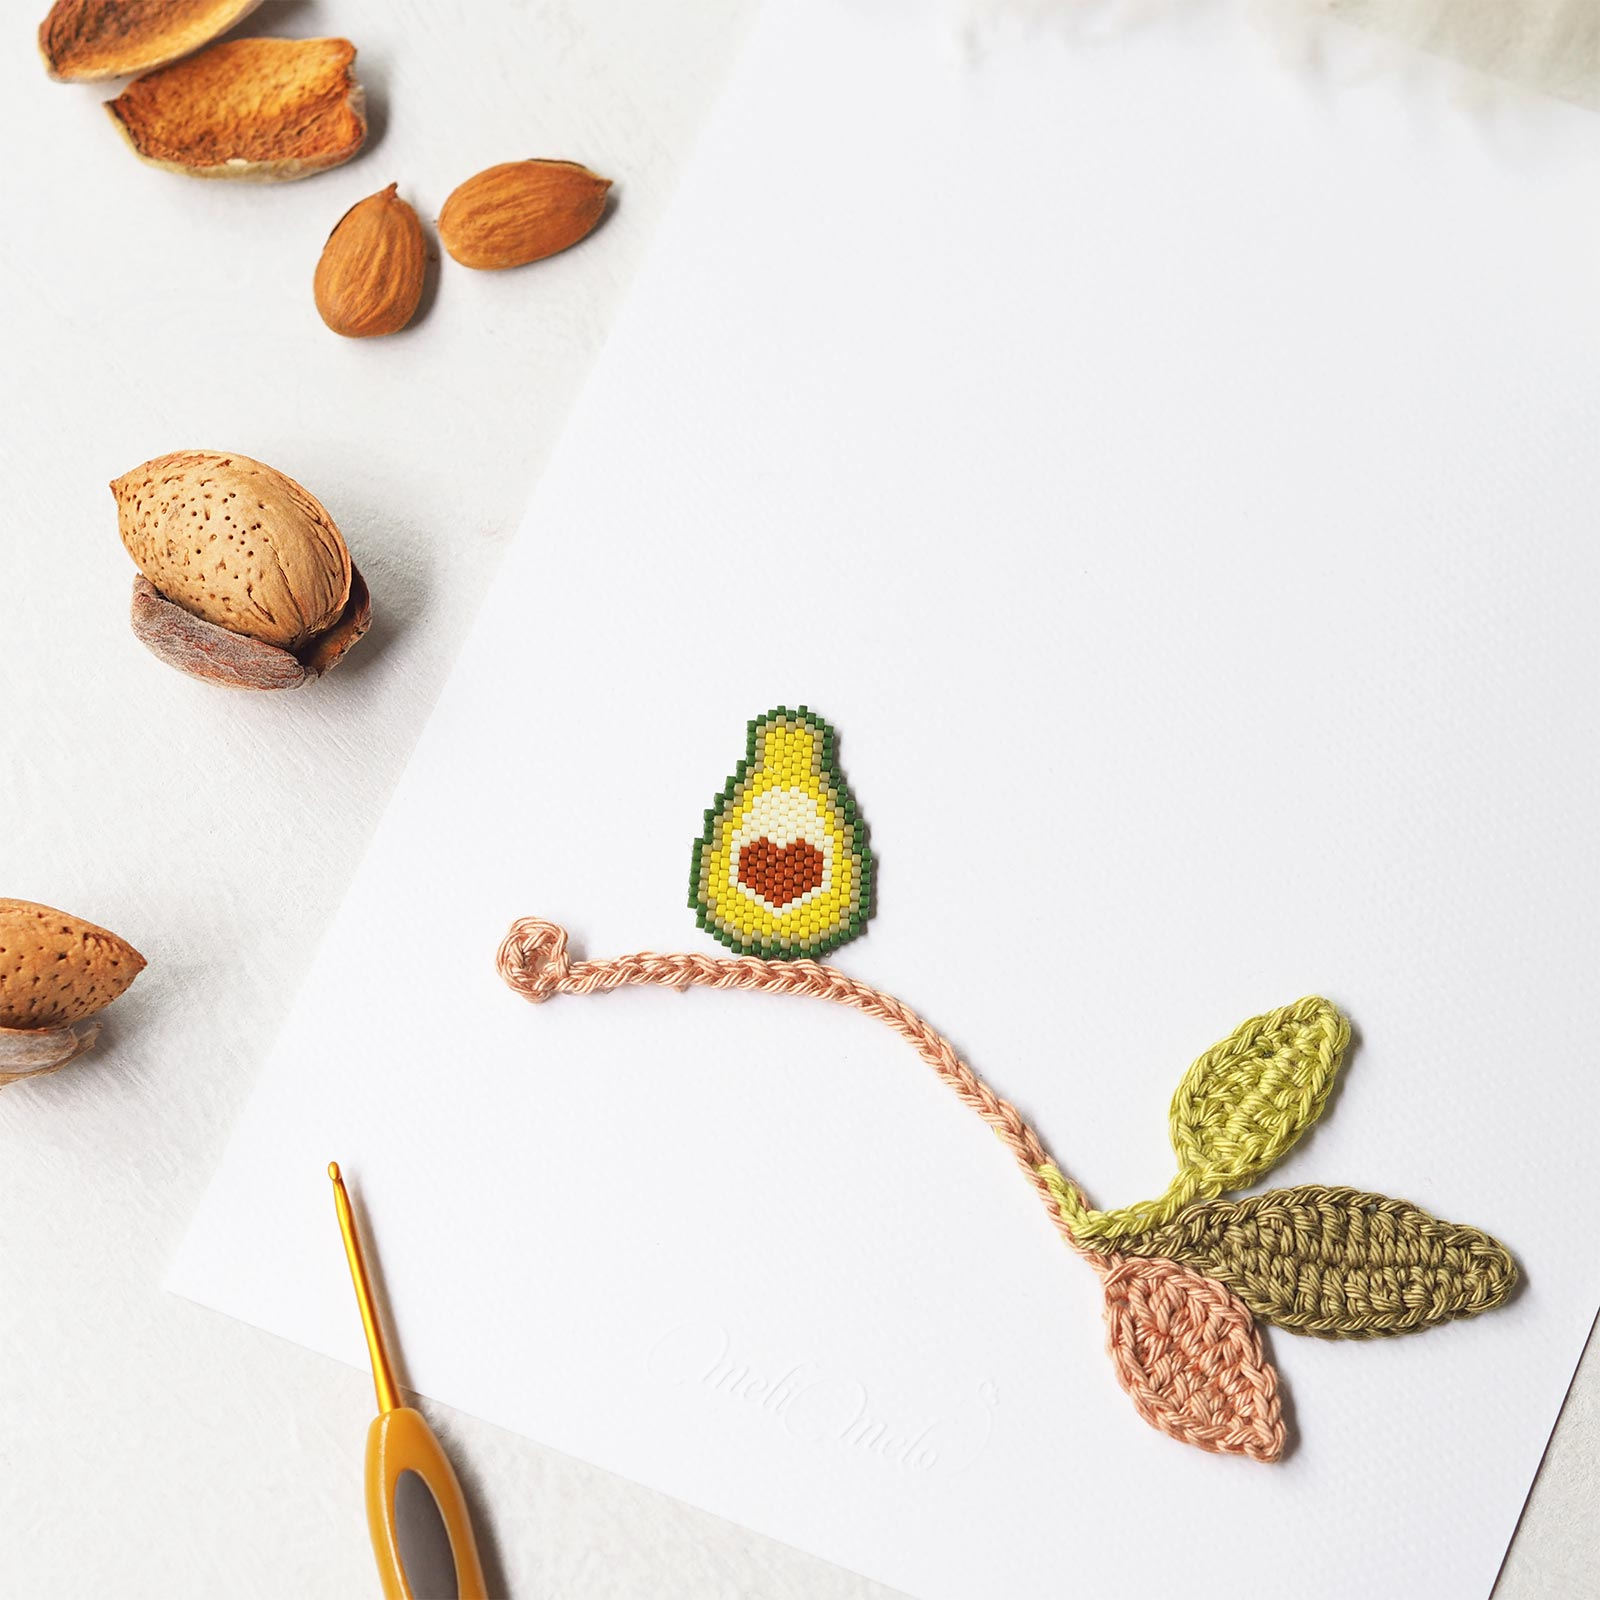 avocat illustration crochet tissage perles miyuki Pauline_Eline laboutiquedemelimelo